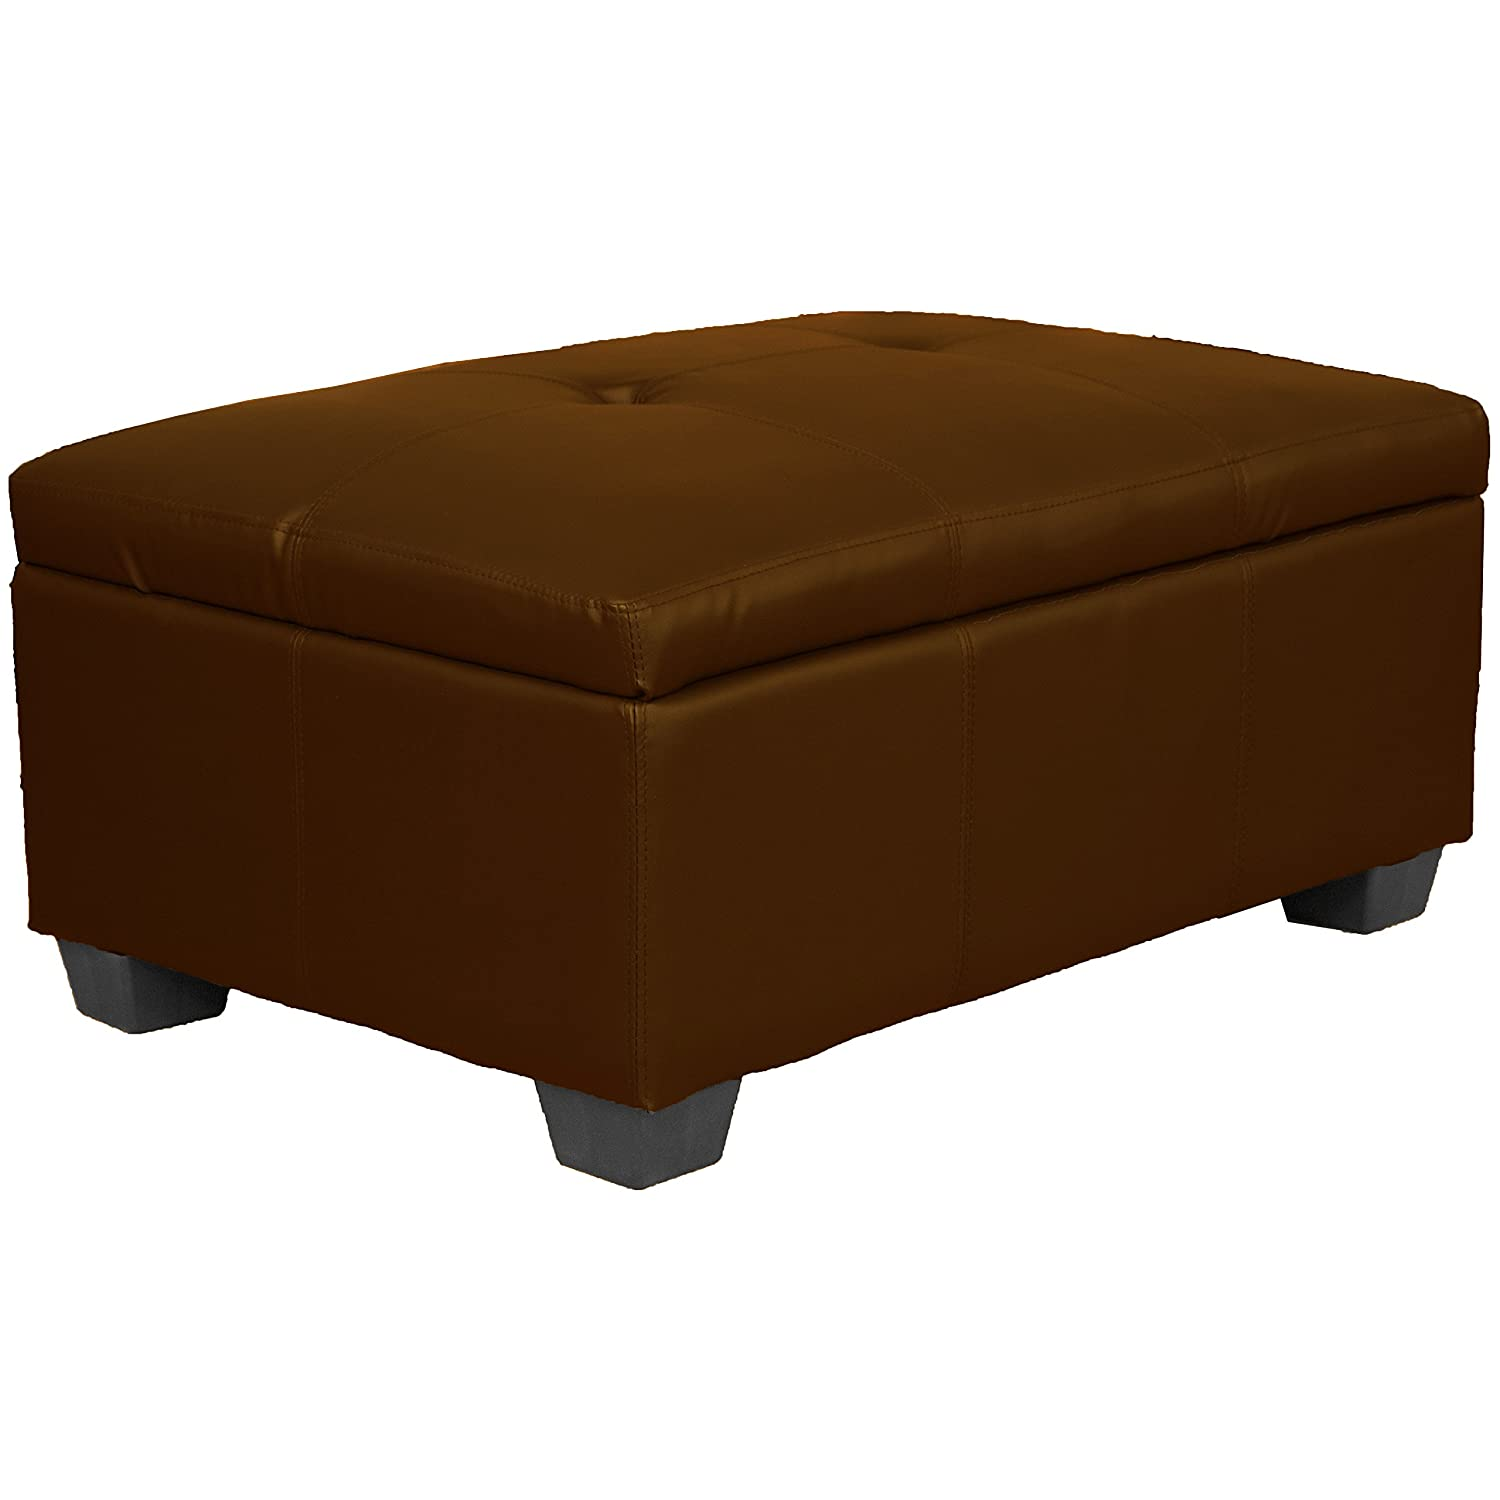 36 x 24 x 18 high Tufted Padded Hinged Storage Ottoman Bench, Leather Look Saddle Epic Furnishings - DROPSHIP OttoLLSaddle1